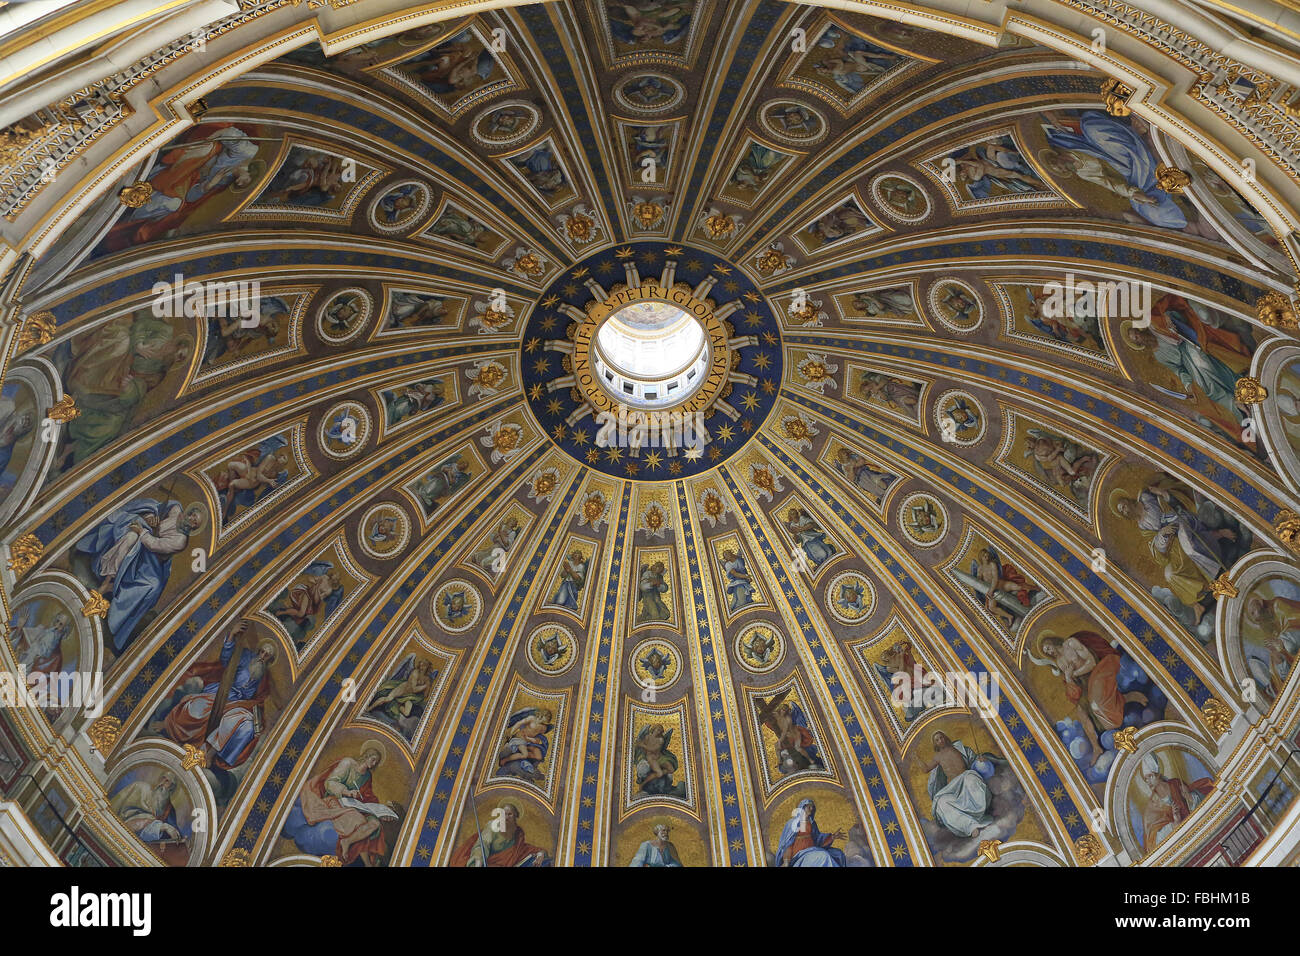 Painted ceiling of dome of St Peter's Basilica, Vatican